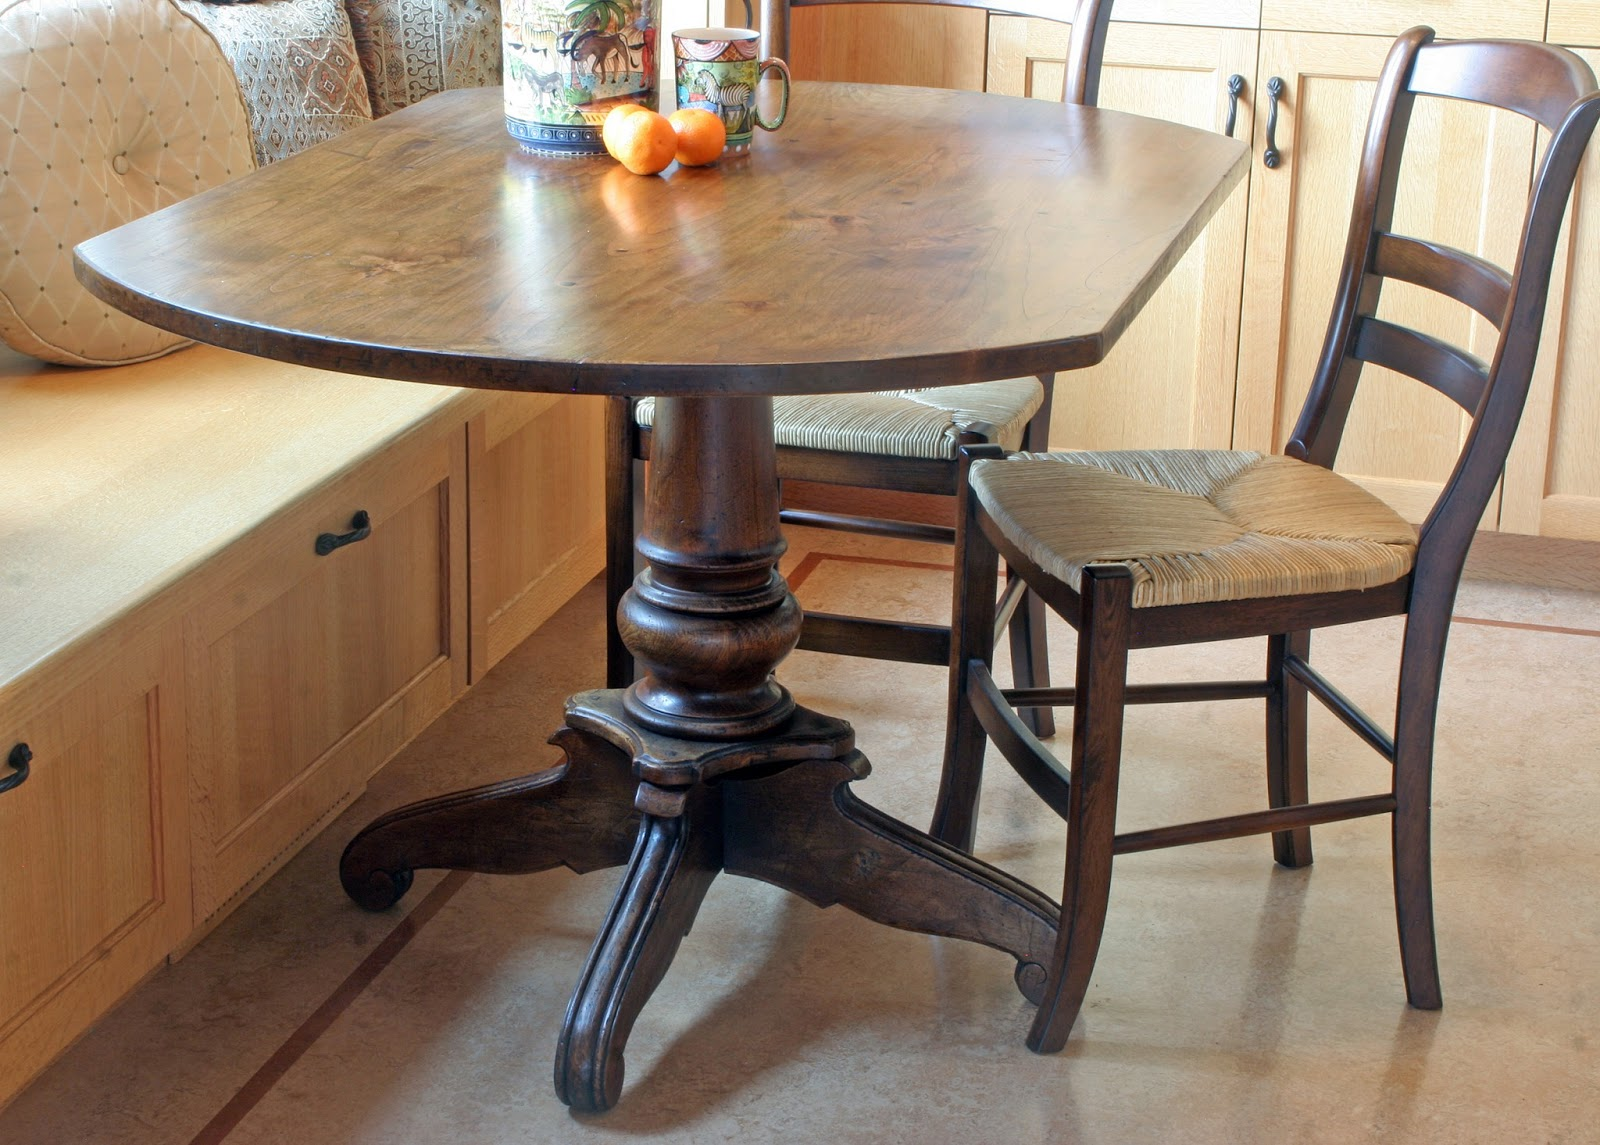 dining table round dining table 8 chairs oval kitchen table Dining Table